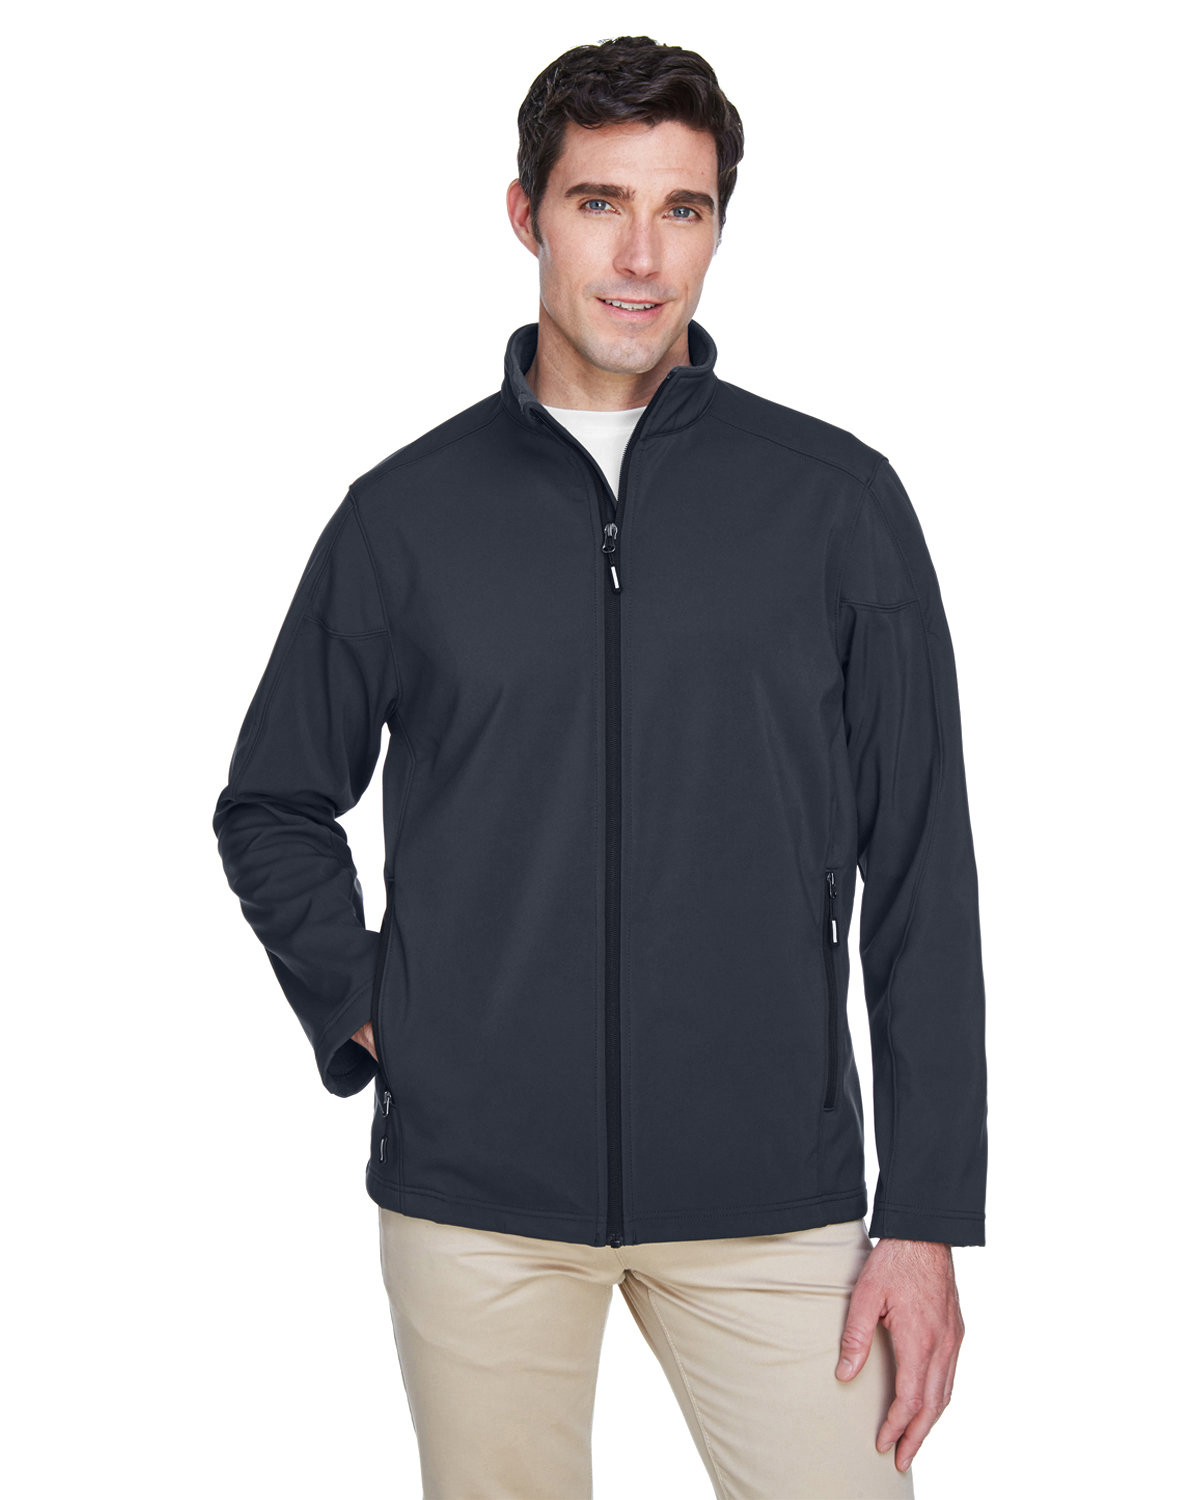 Core 365 Men's Cruise Two-Layer Fleece Bonded SoftShell Jacket CARBON